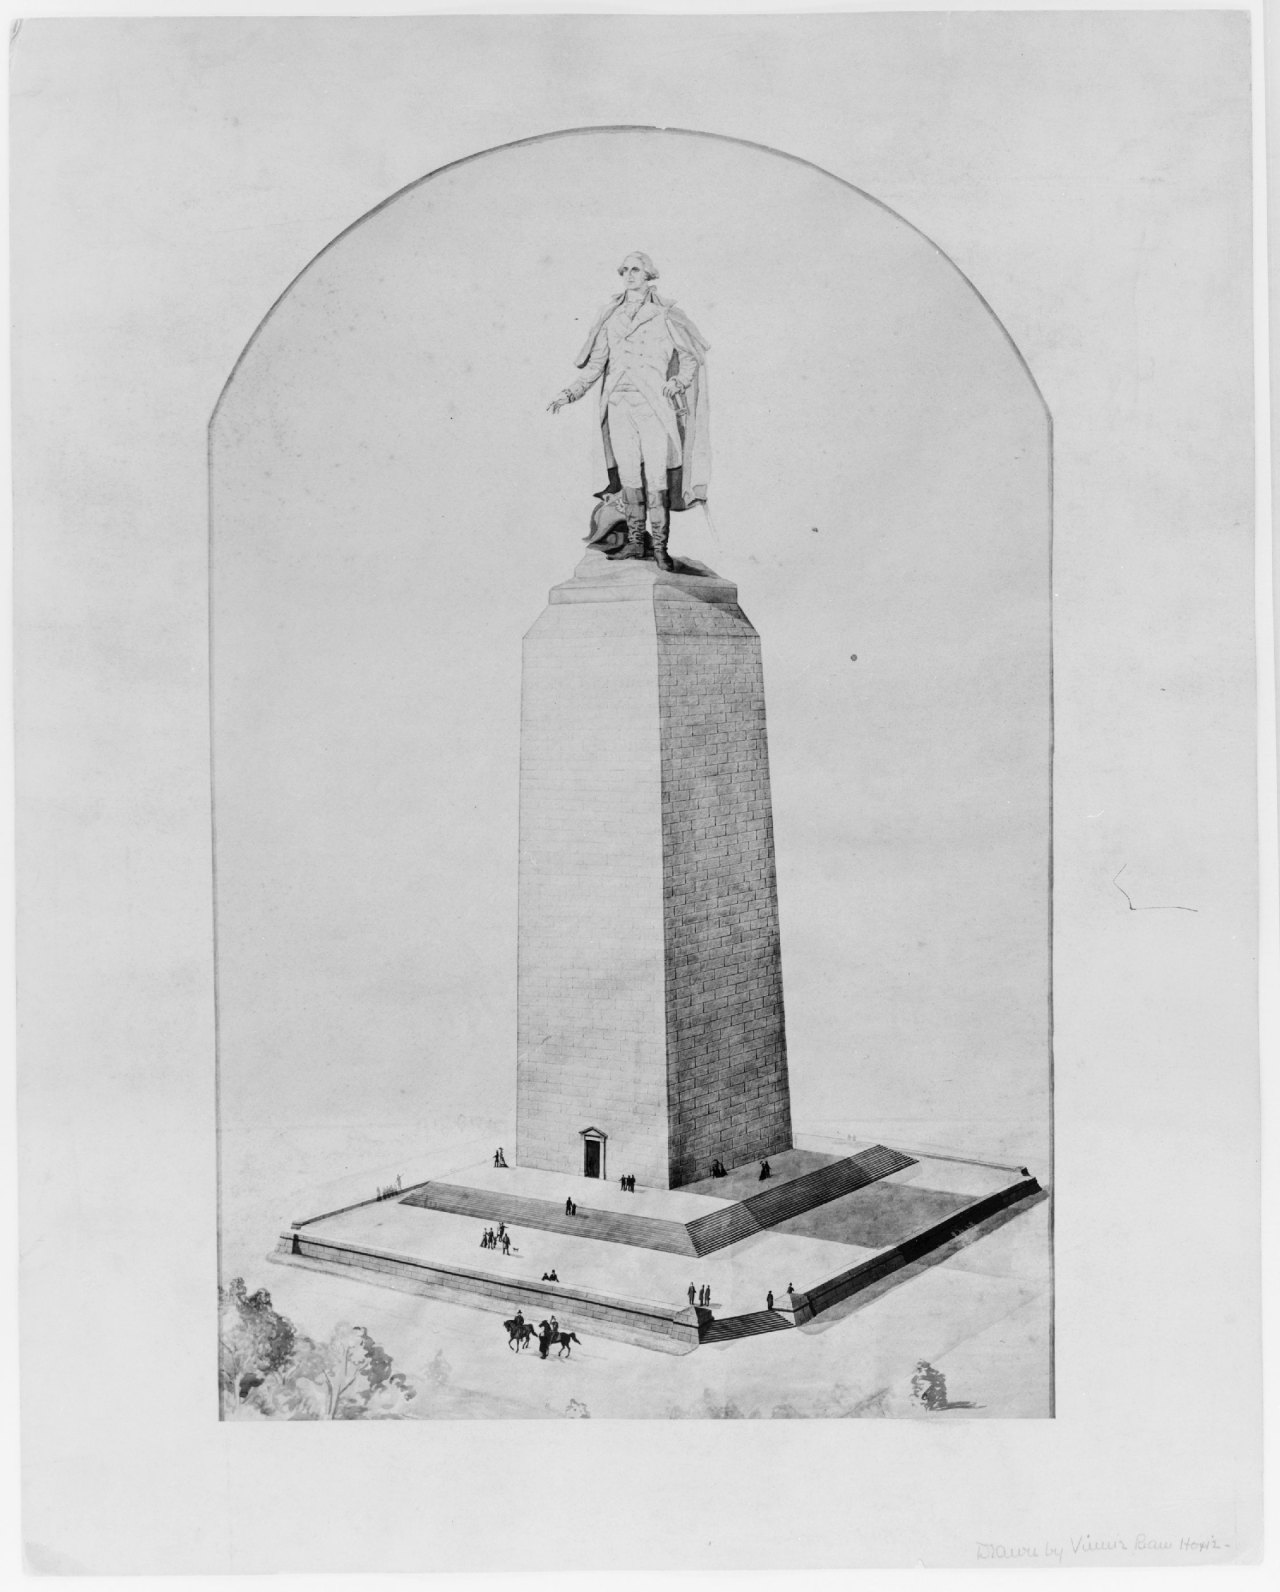 Illustration for a reuse of the incomplete Washington Monument, Washington D.C.